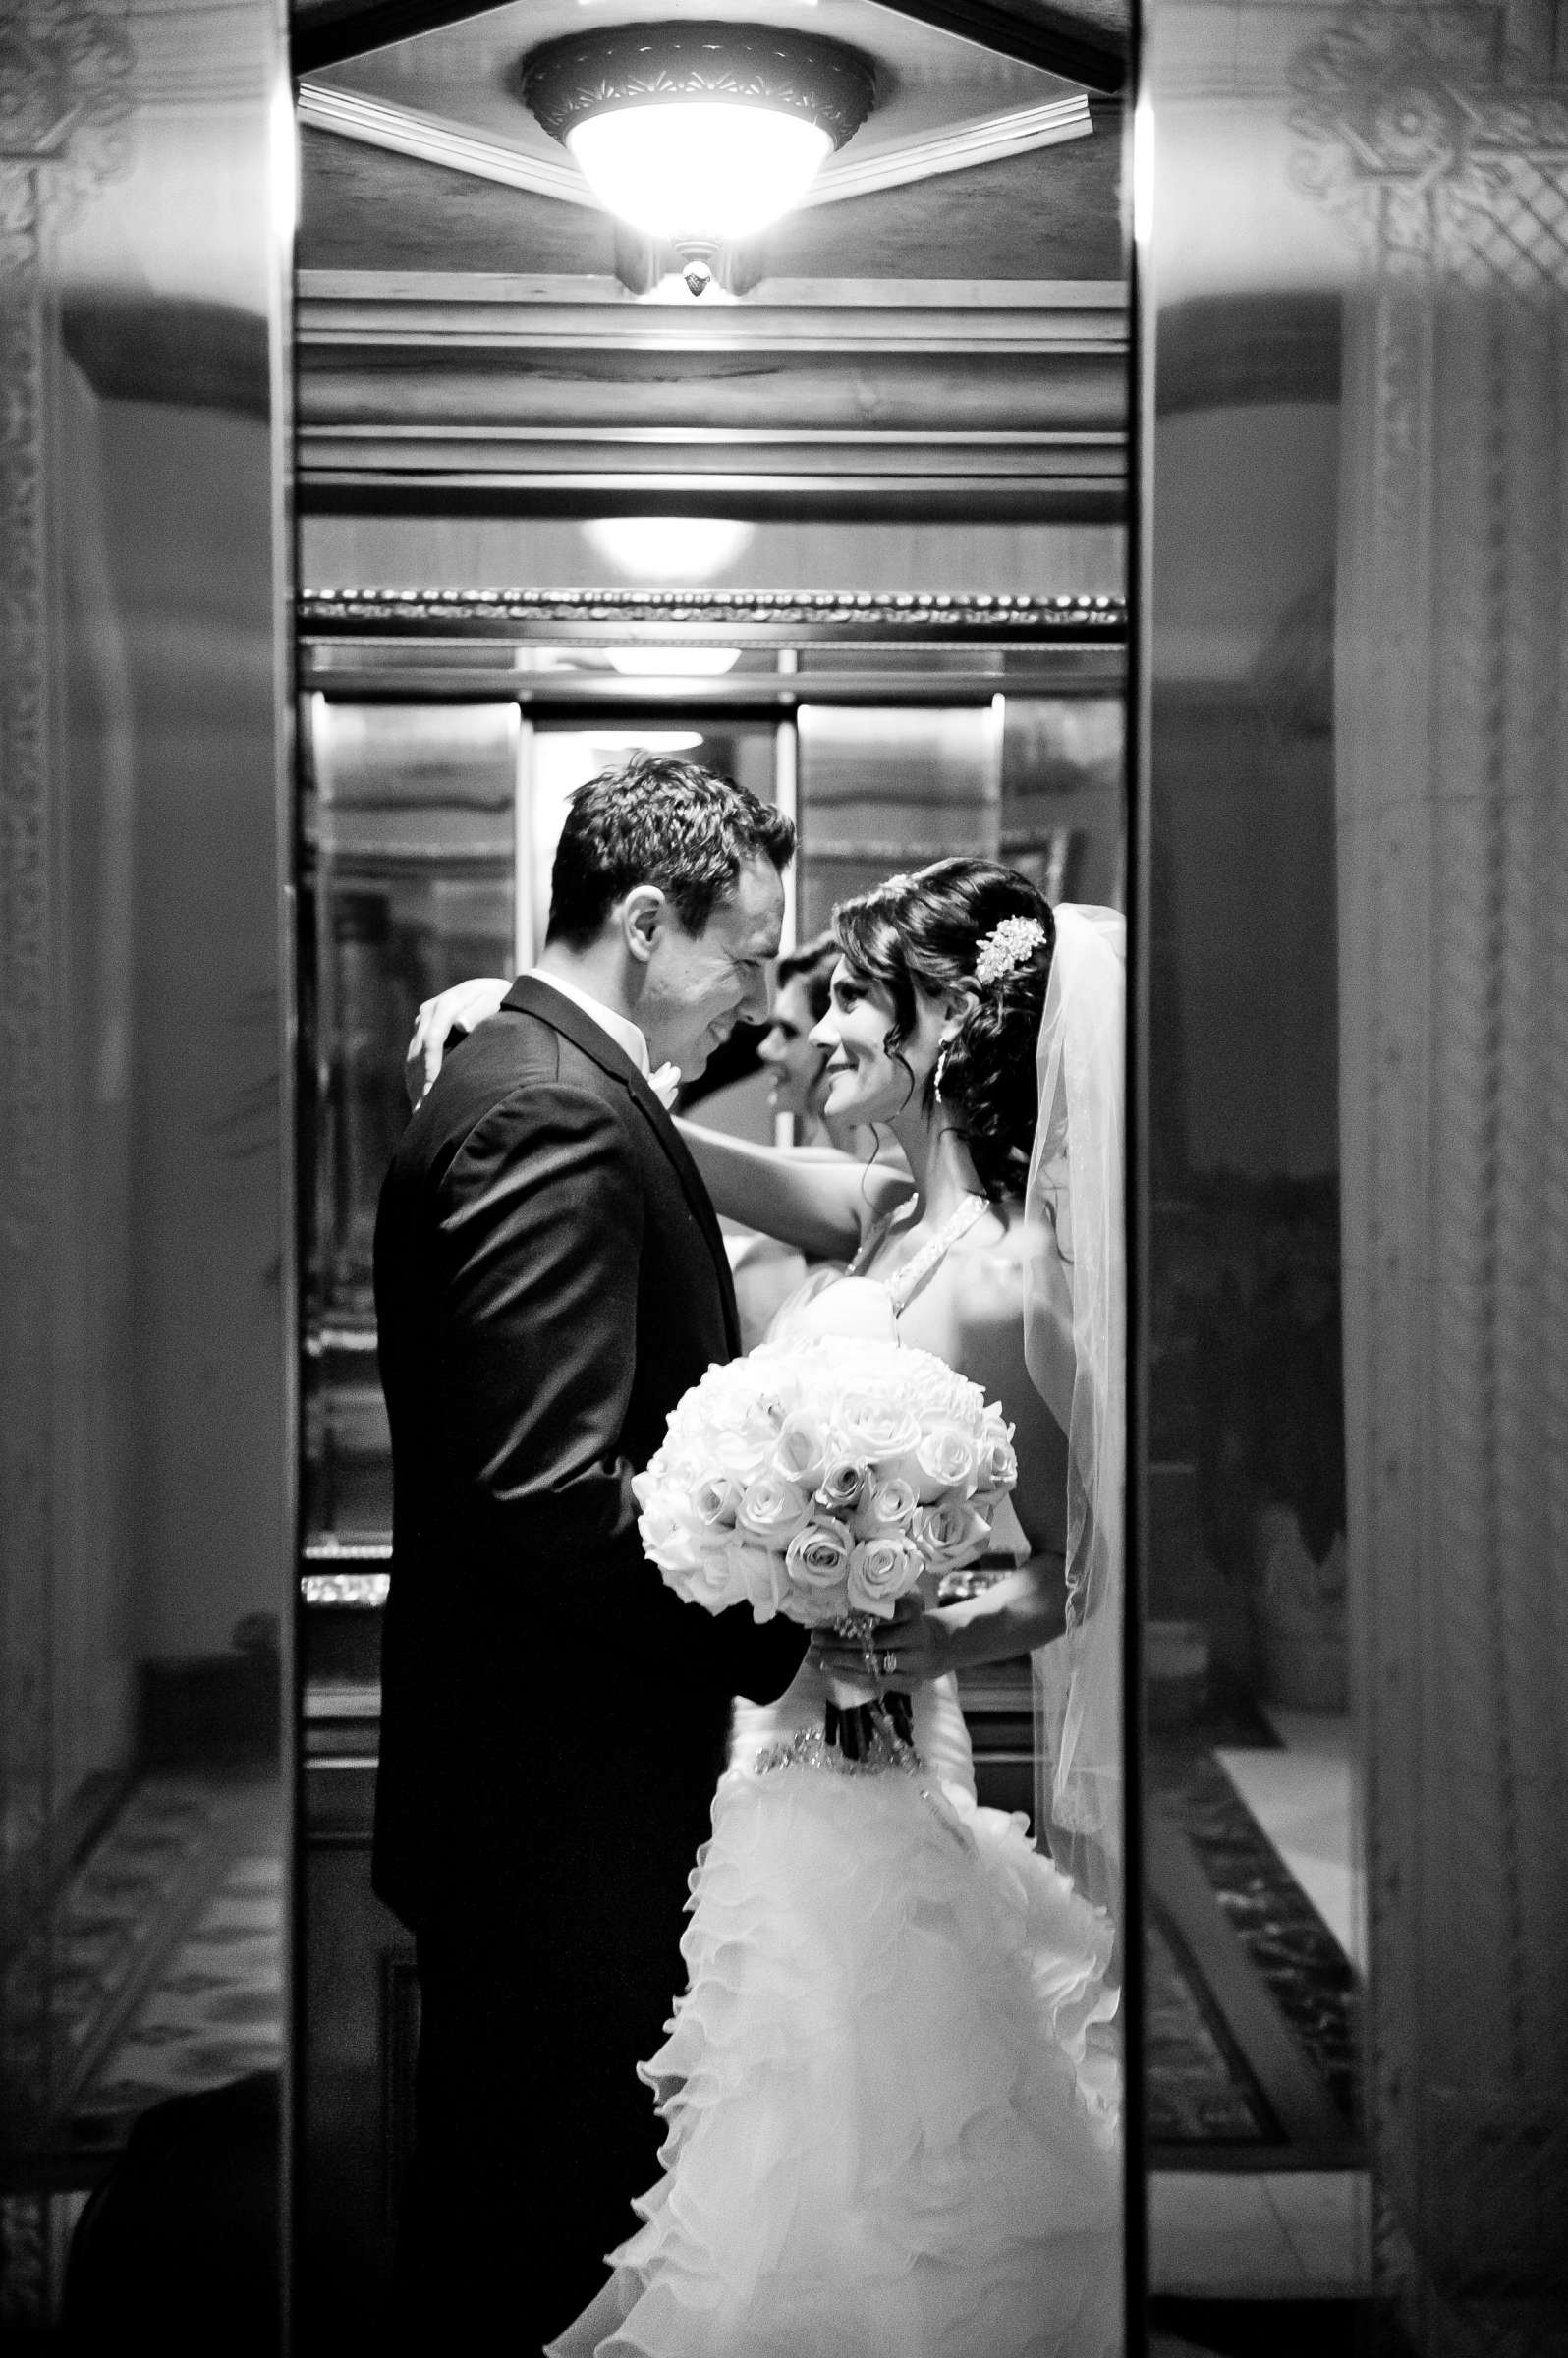 Fairmont Grand Del Mar Wedding, Angela and Tom Wedding Photo #13 by True Photography